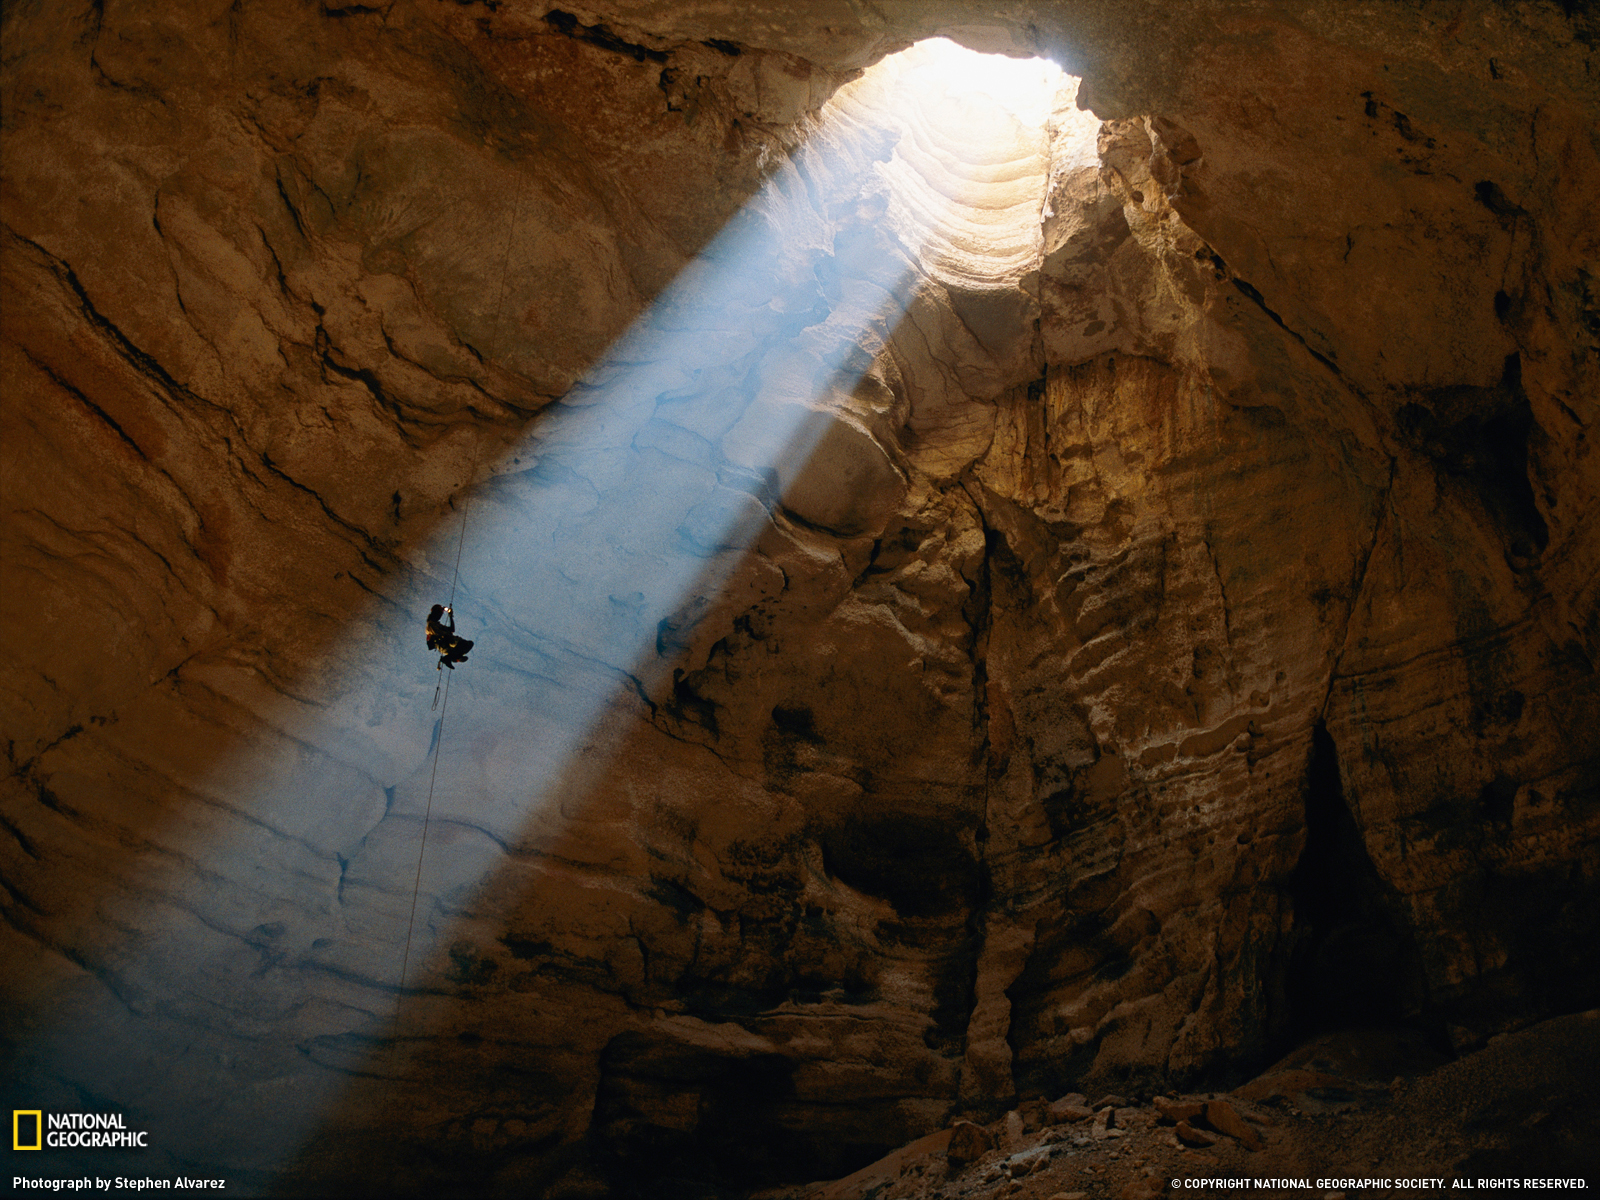 An-explorer-descends-into-the-Majlis-al-Jinn-cave-in-Oman-At-more-than-stories-deep-its-one-of-wallpaper-wp4603621-1